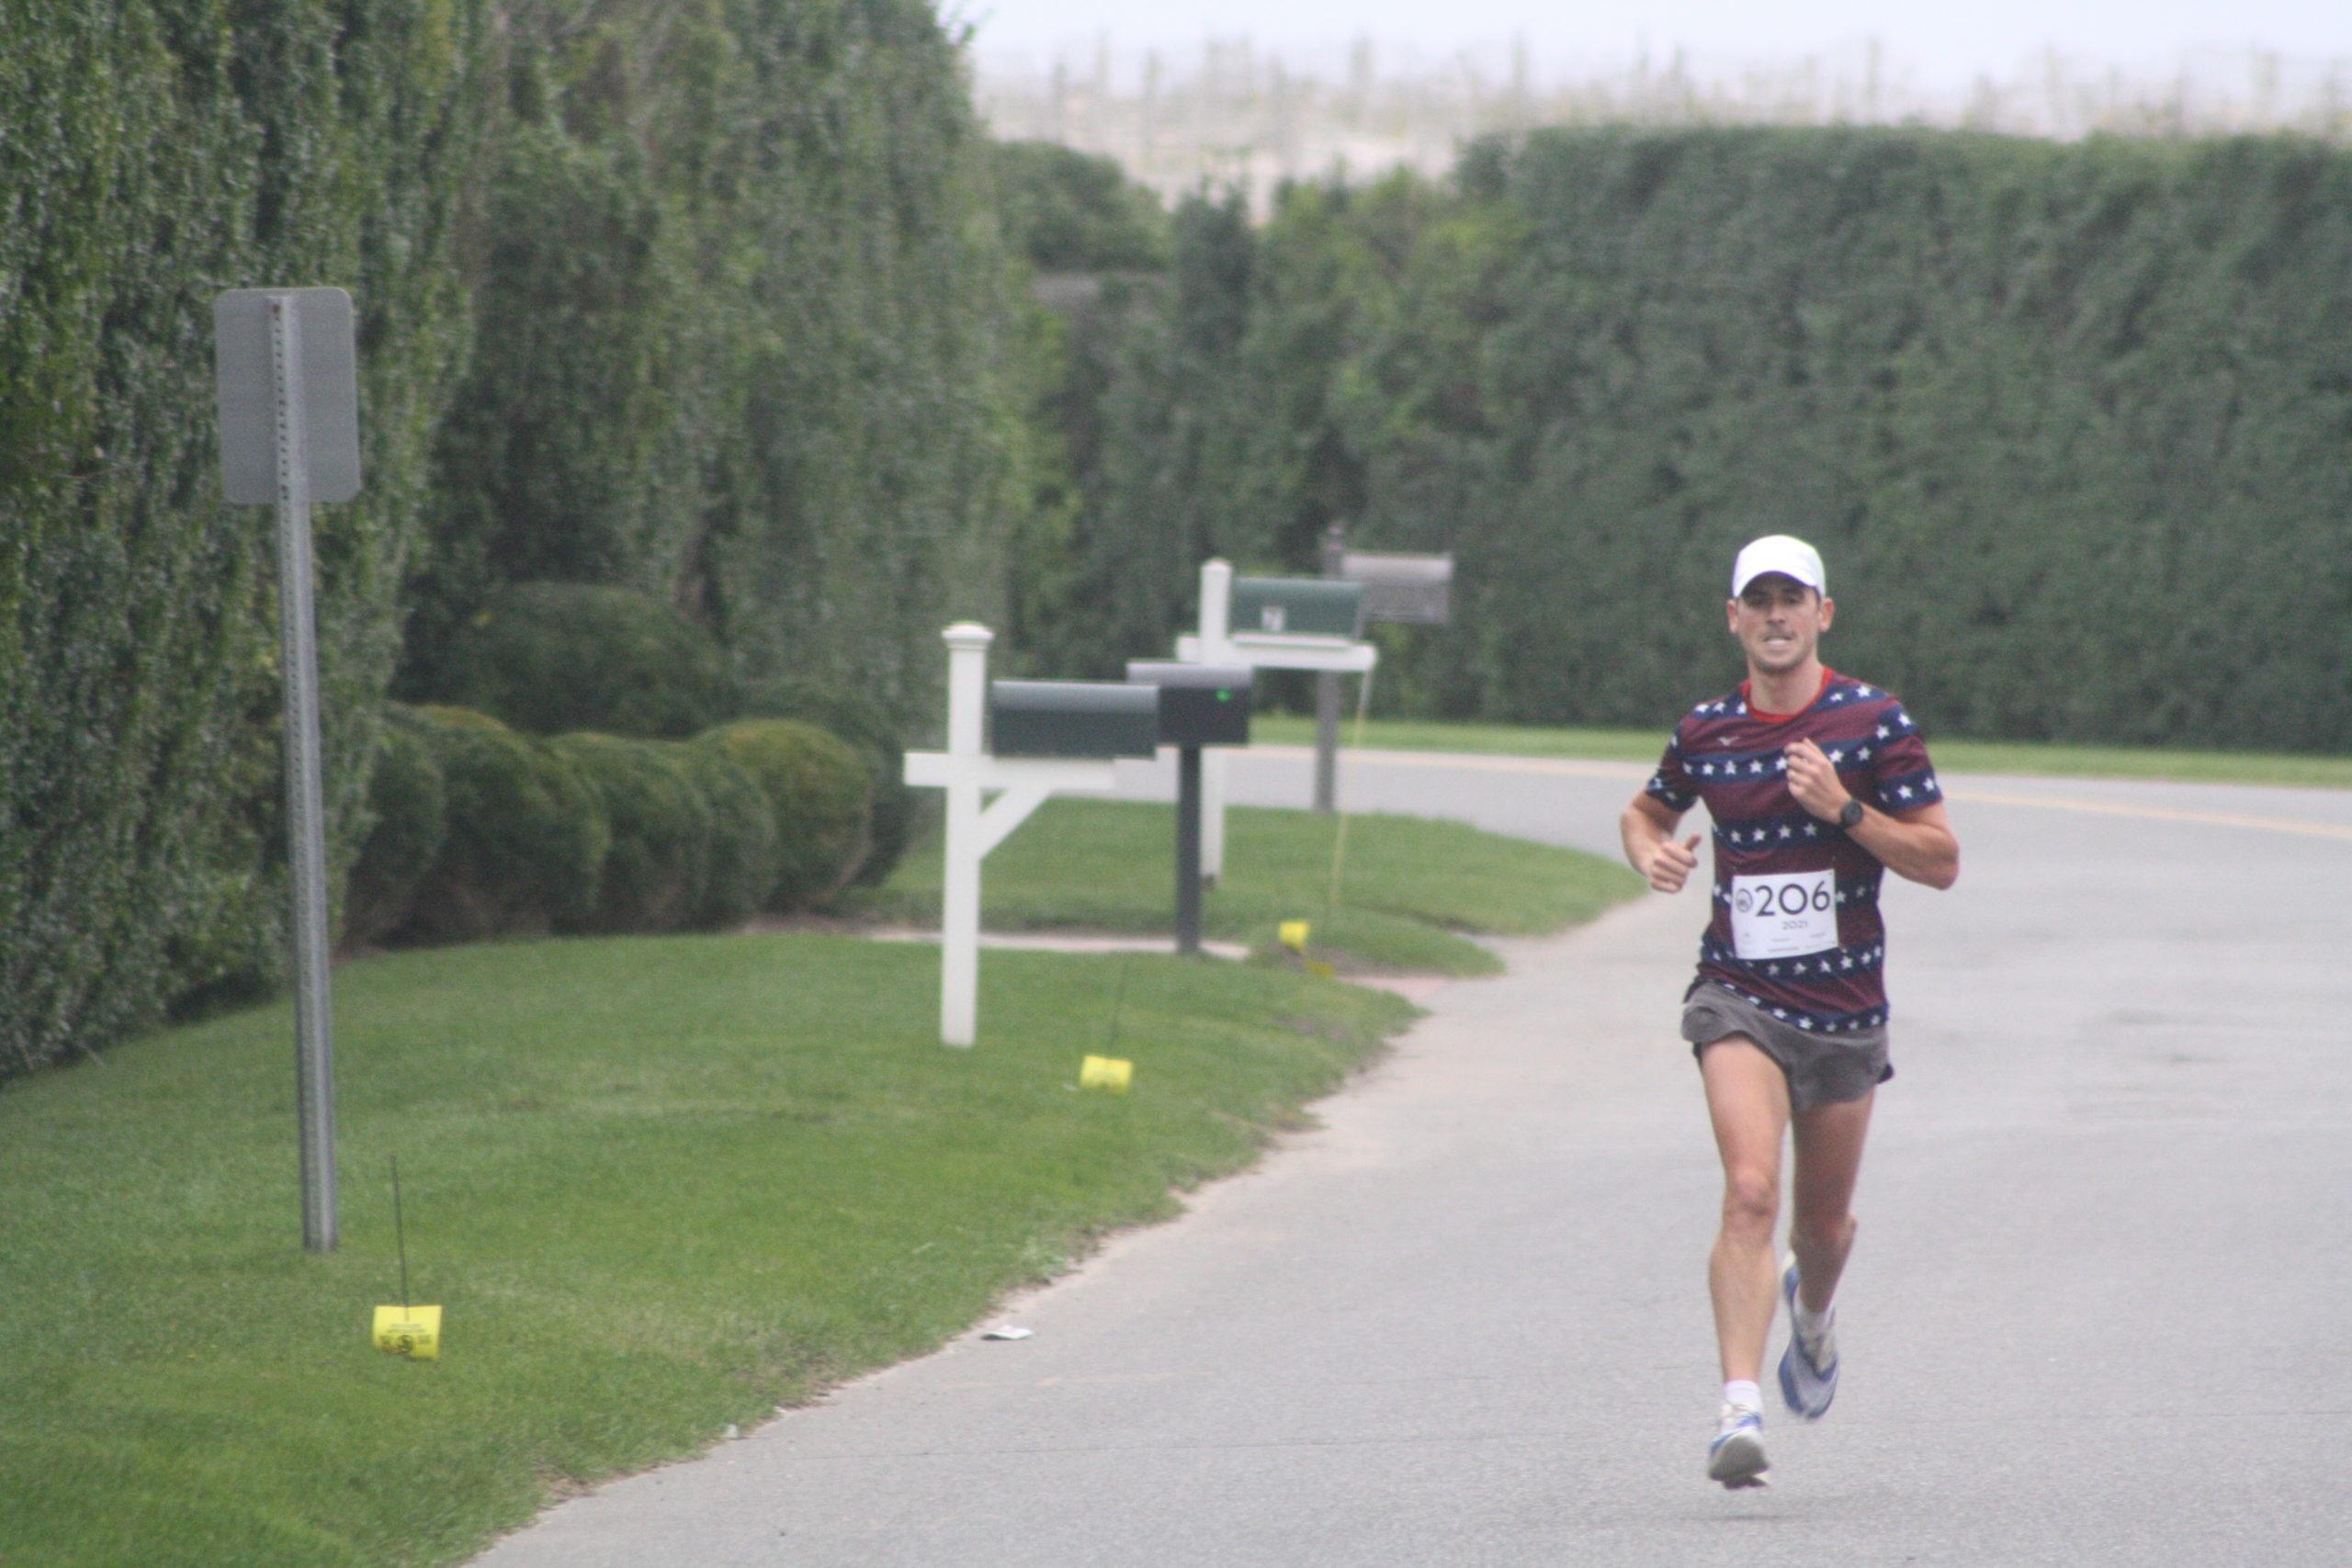 Oz Pearlman, a past winner of both the Firecracker 8K and the Hamptons Marathon, had a huge lead over the field for most of the race and won easily.